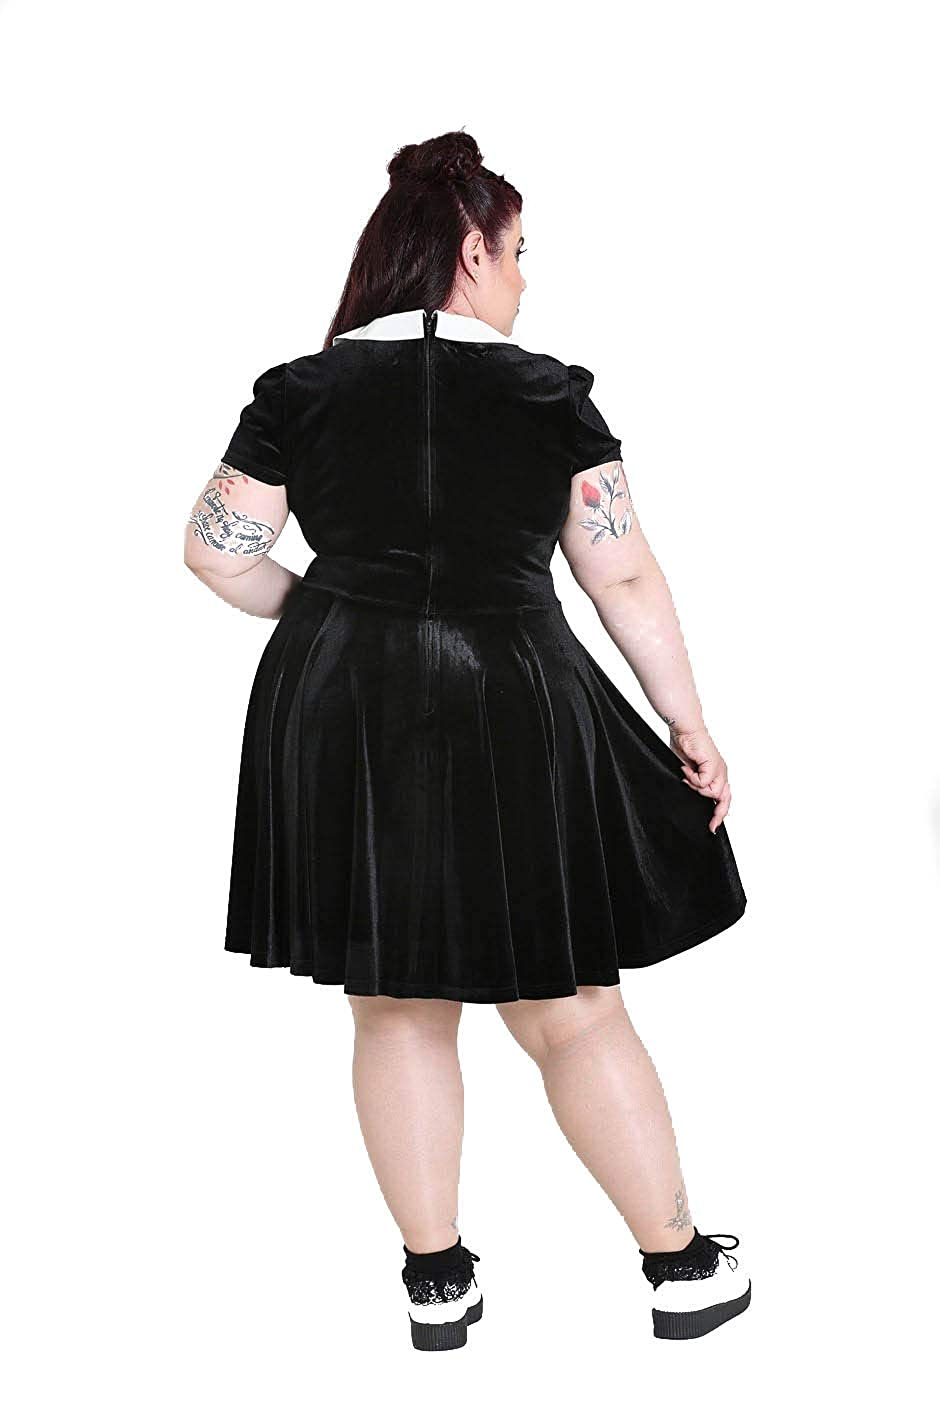 b98154d96b Hell Bunny Plus Size Gothic Wednesday Addams Casper Ghost Mini Dress at  Amazon Women s Clothing store